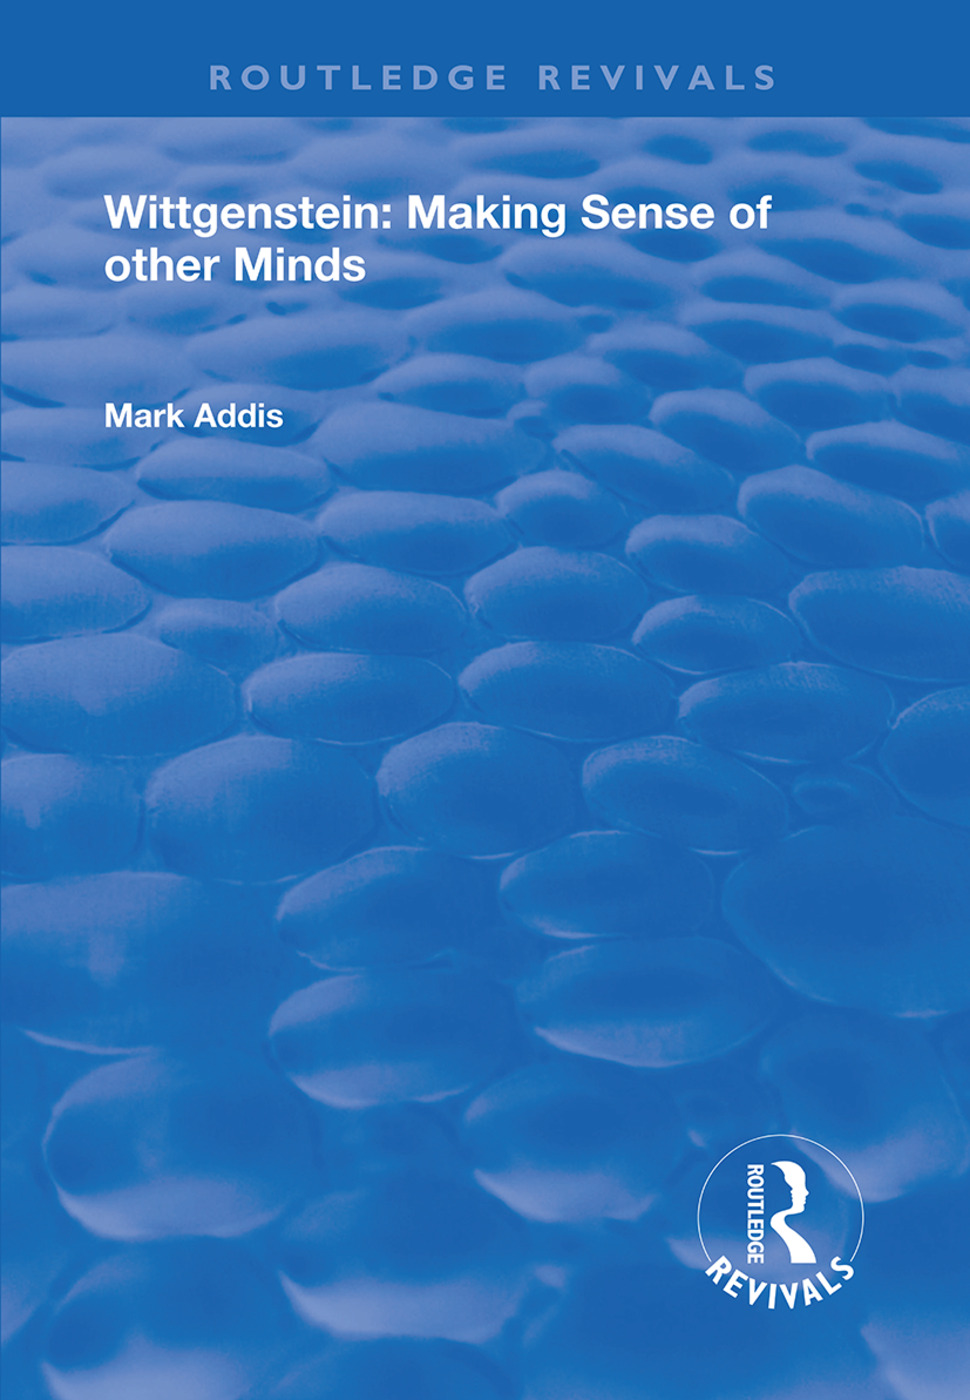 Wittgenstein: Making Sense of Other Minds book cover